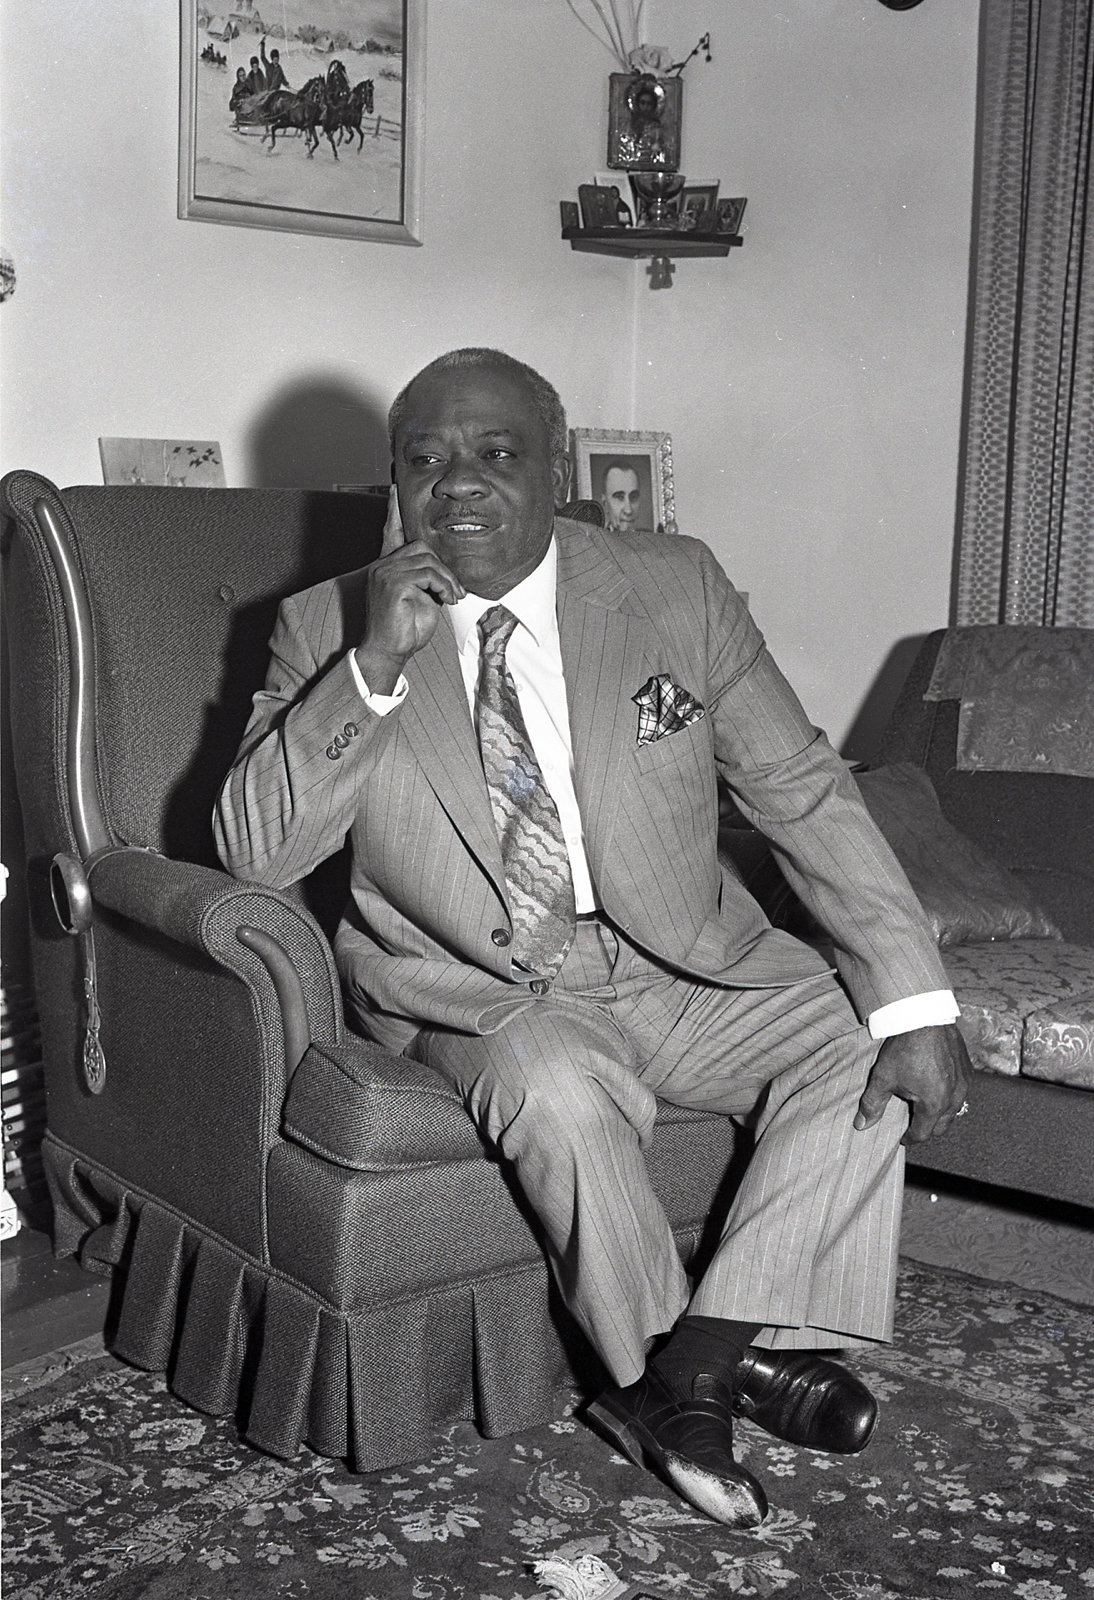 Dr. Monestime was the first black mayor elected in Canadian history. Courtesy the West Nipissing Public Library.